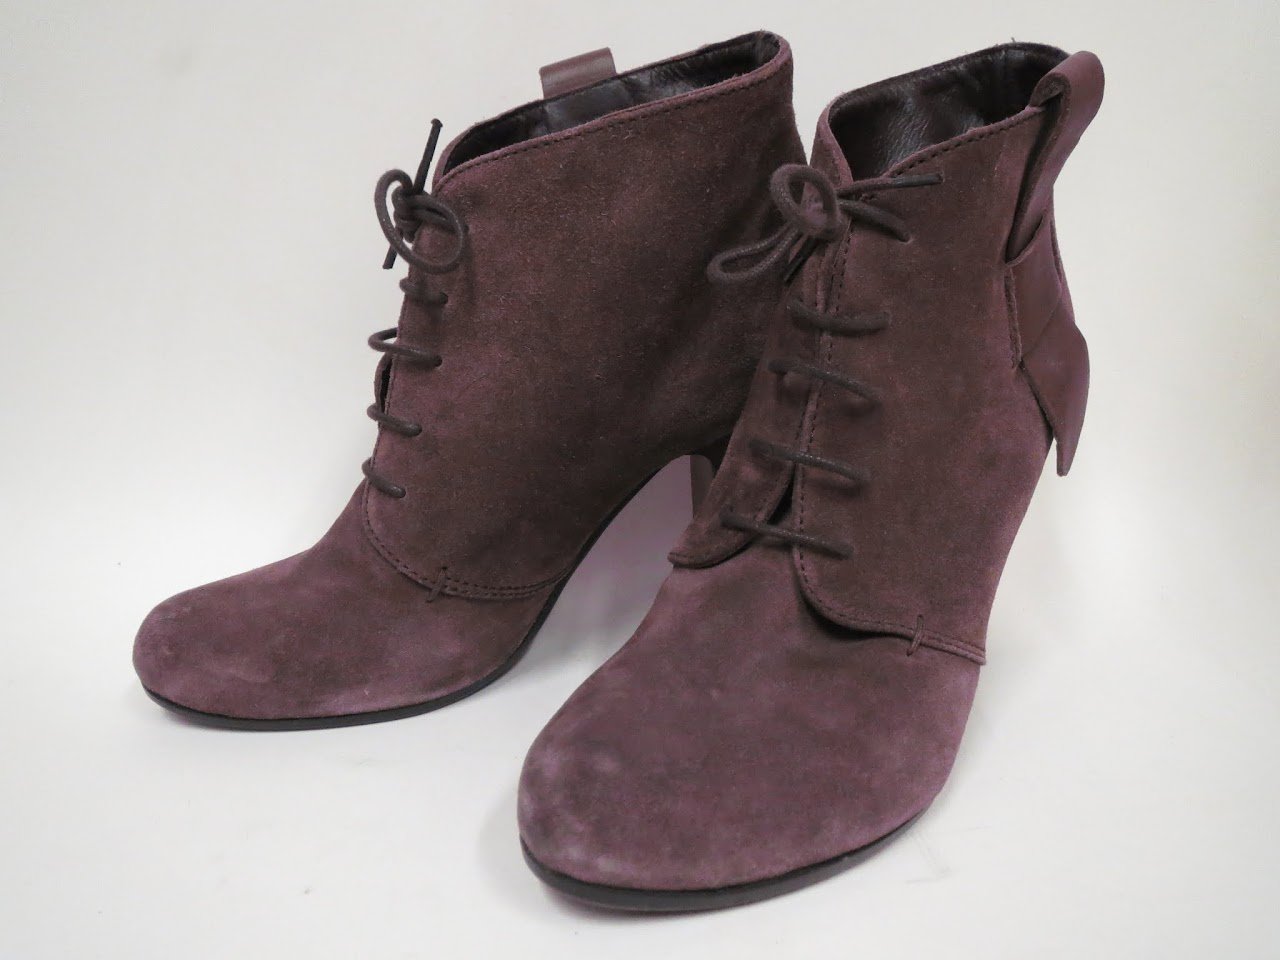 Giancarlo Paoli Suede Boots